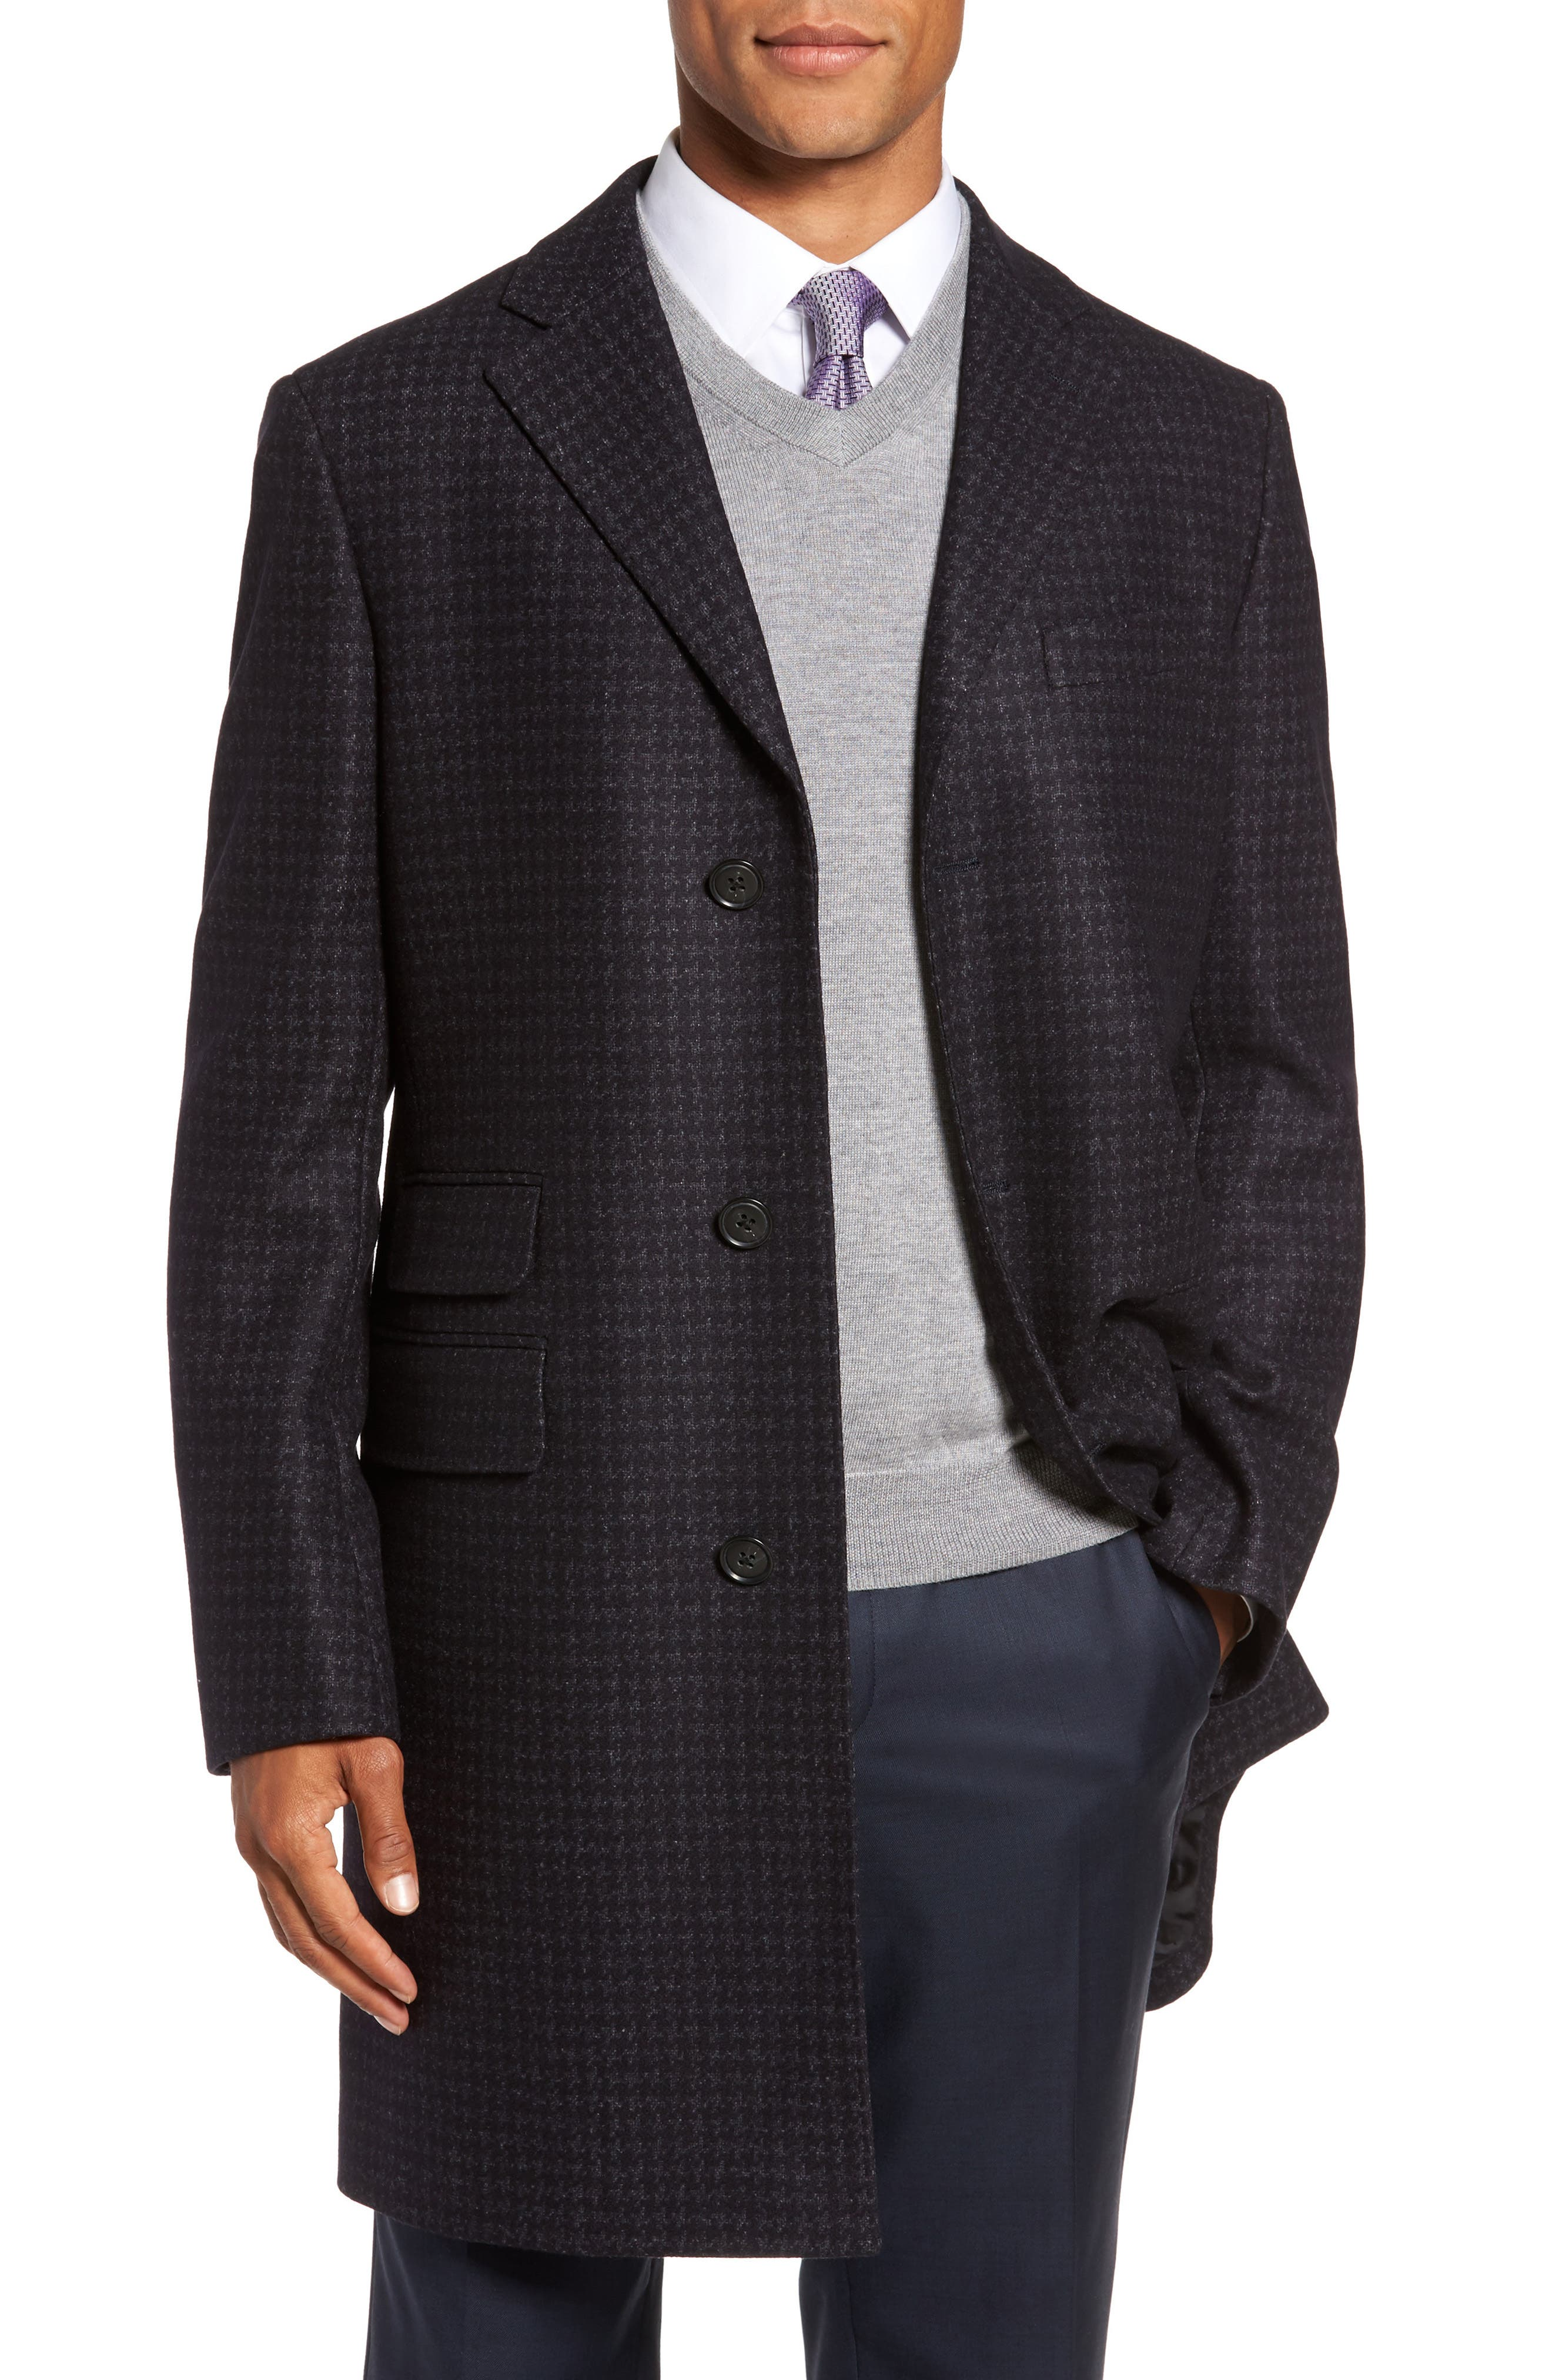 Jackson Houndstooth Wool Blend Overcoat,                             Main thumbnail 1, color,                             Navy